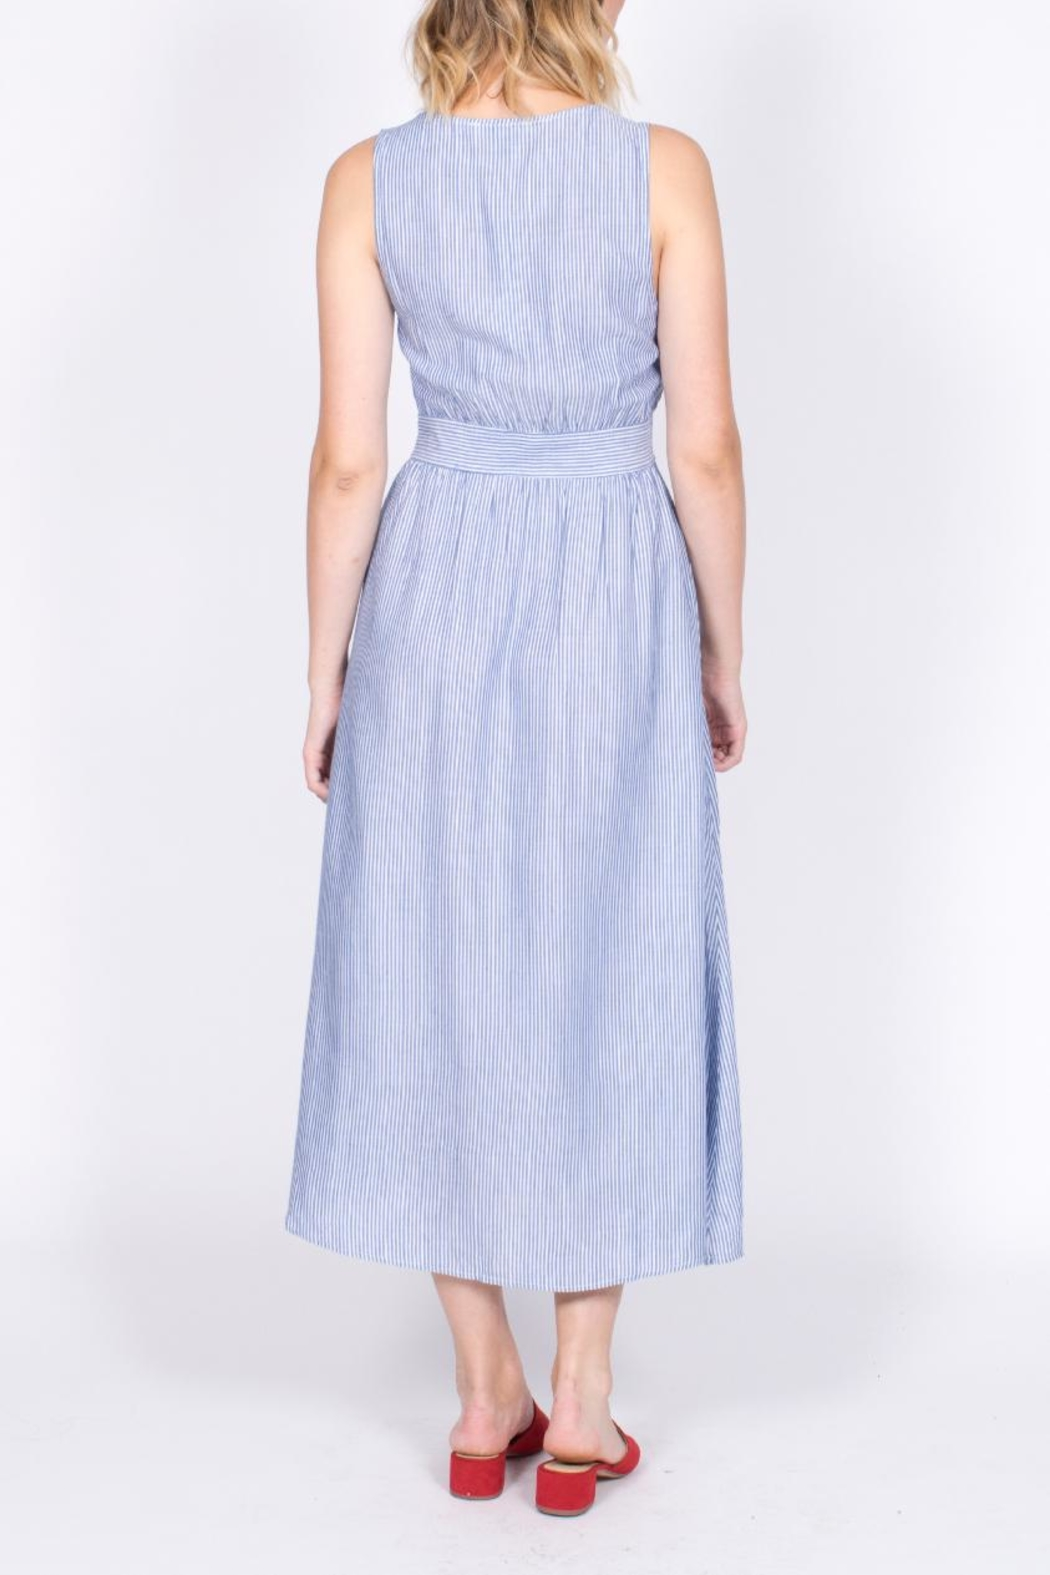 She + Sky Button Down Midi Dress - Back Cropped Image